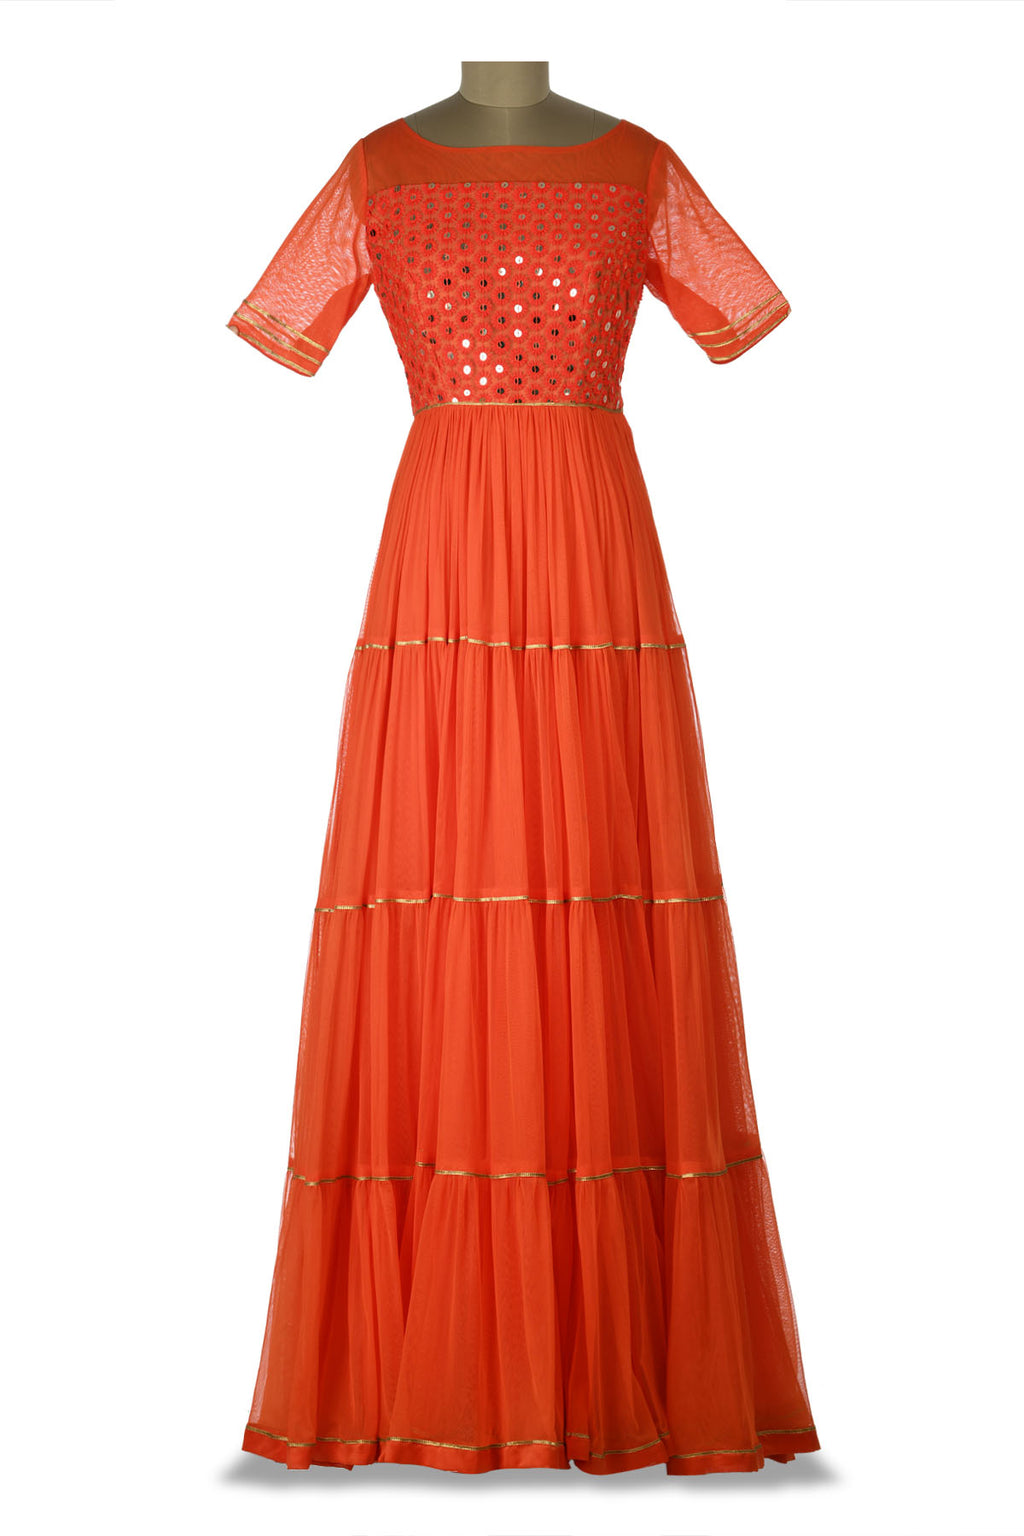 Shop beautiful orange embroidered net tiered Anarkali gown online in USA. Shine at weddings and special occasions with beautiful Indian designer Anarkali suits, salwar suits, sharara suits, designer lehengas from Pure Elegance Indian clothing store in USA.-full view